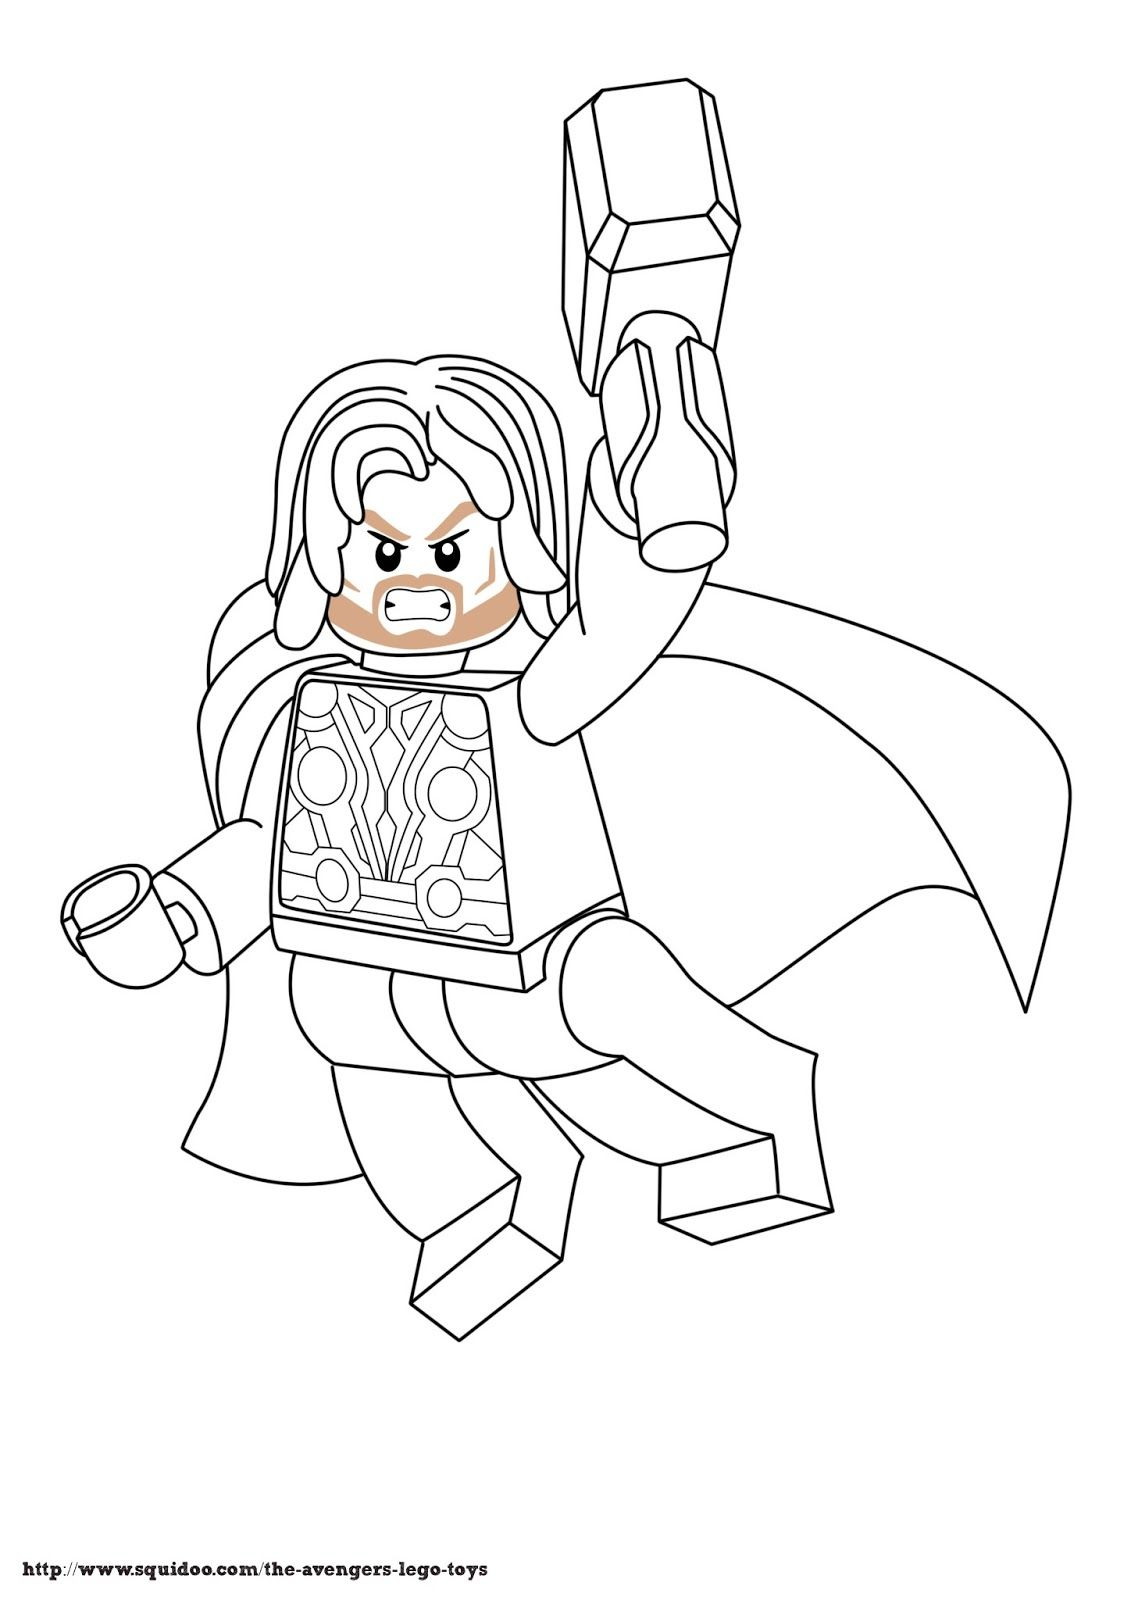 thor Coloring Pages to Print | Avenger+Lego+Coloring+ | ABC for miah ...